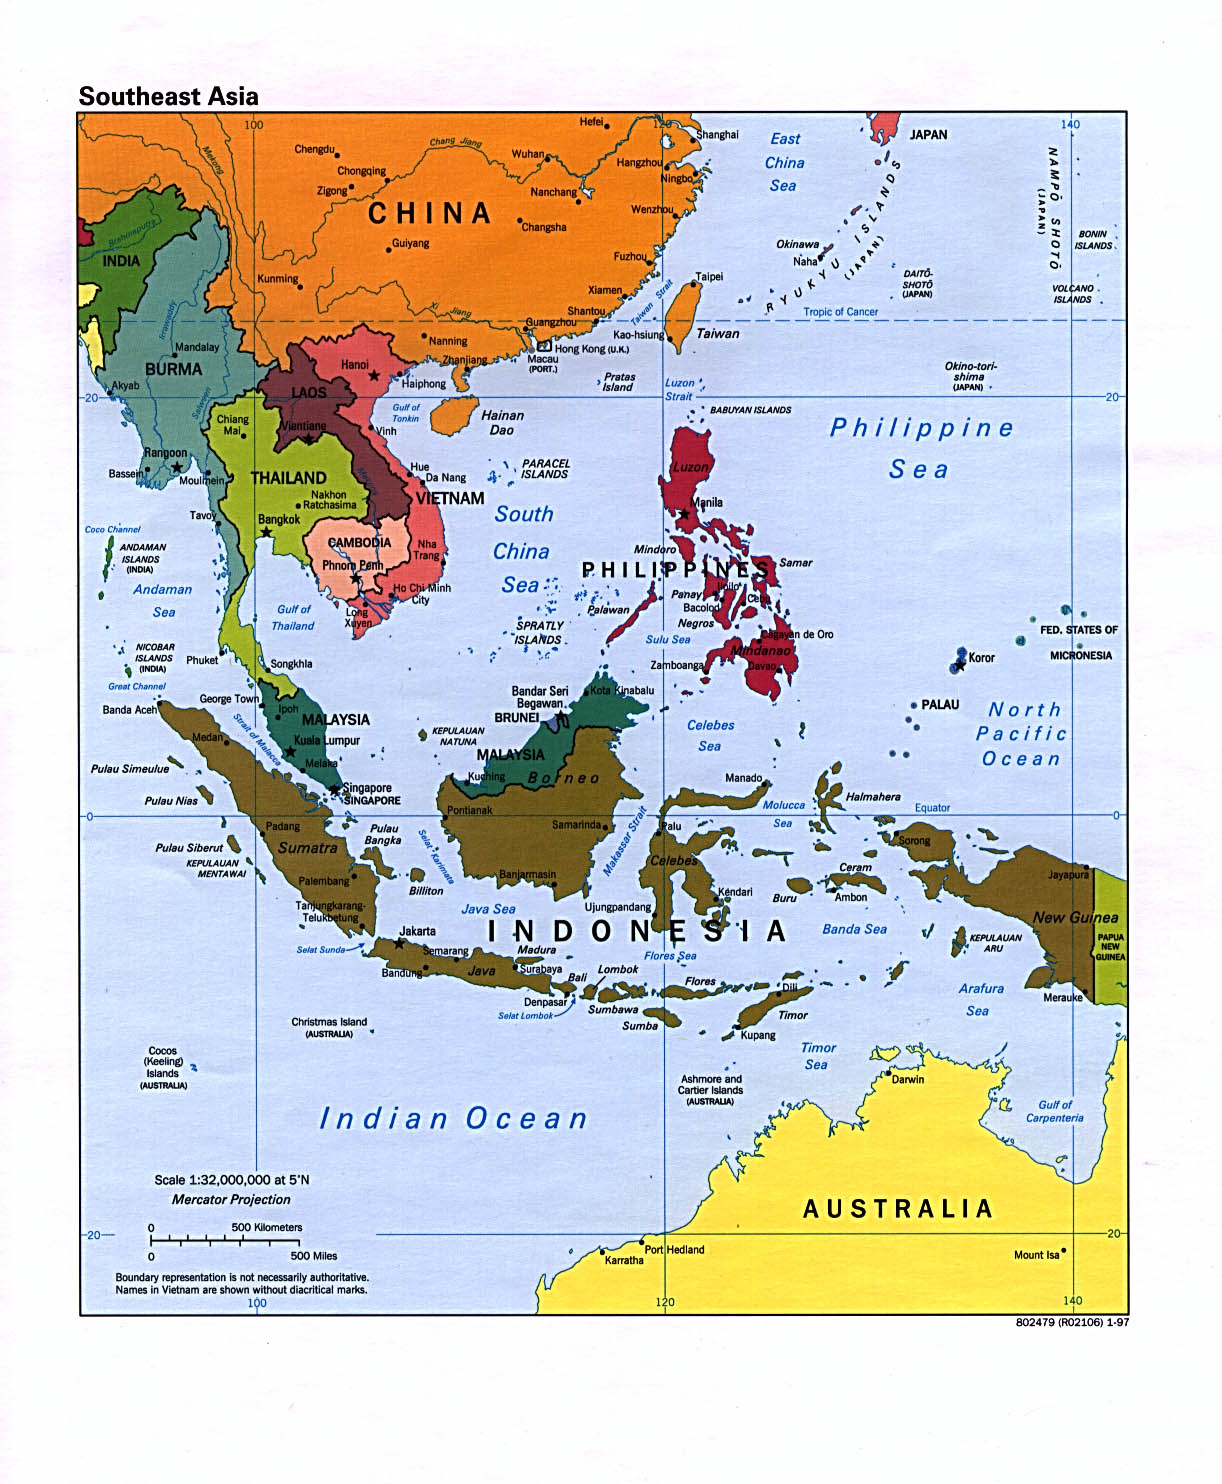 Interopp political map of southeast asia large 1997 political map of southeast asia large 1997 publicscrutiny Gallery